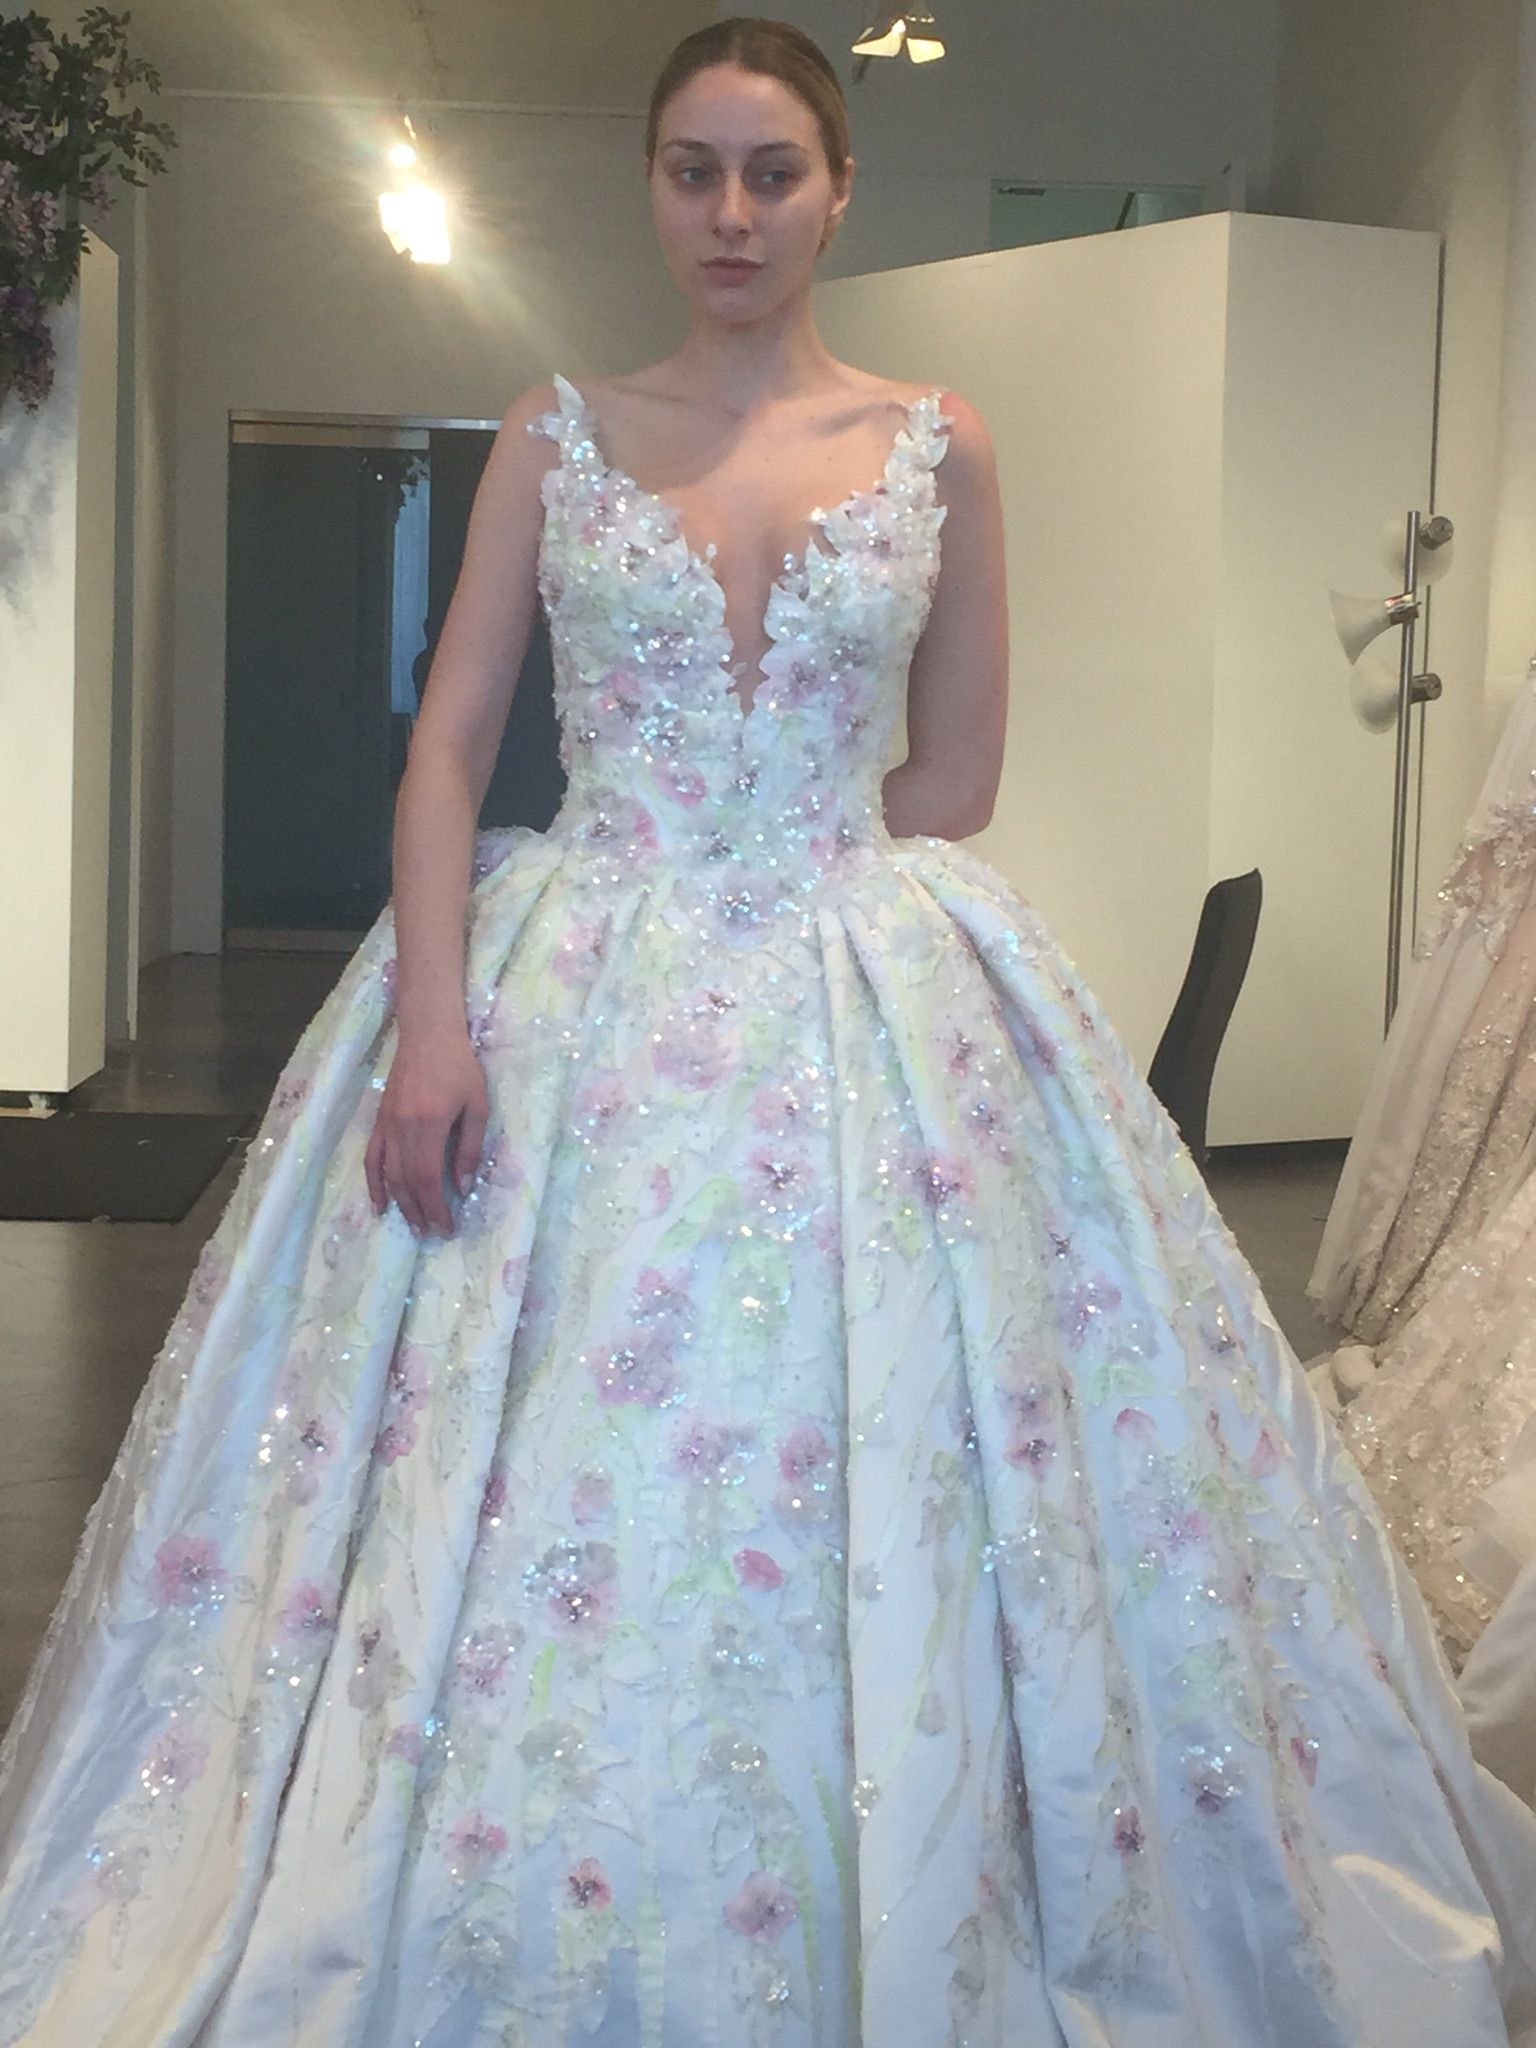 Ysa makino spring 2017 collection available at bridal reflection possibly for bridesmaid dress not wedding dress ombrellifo Gallery